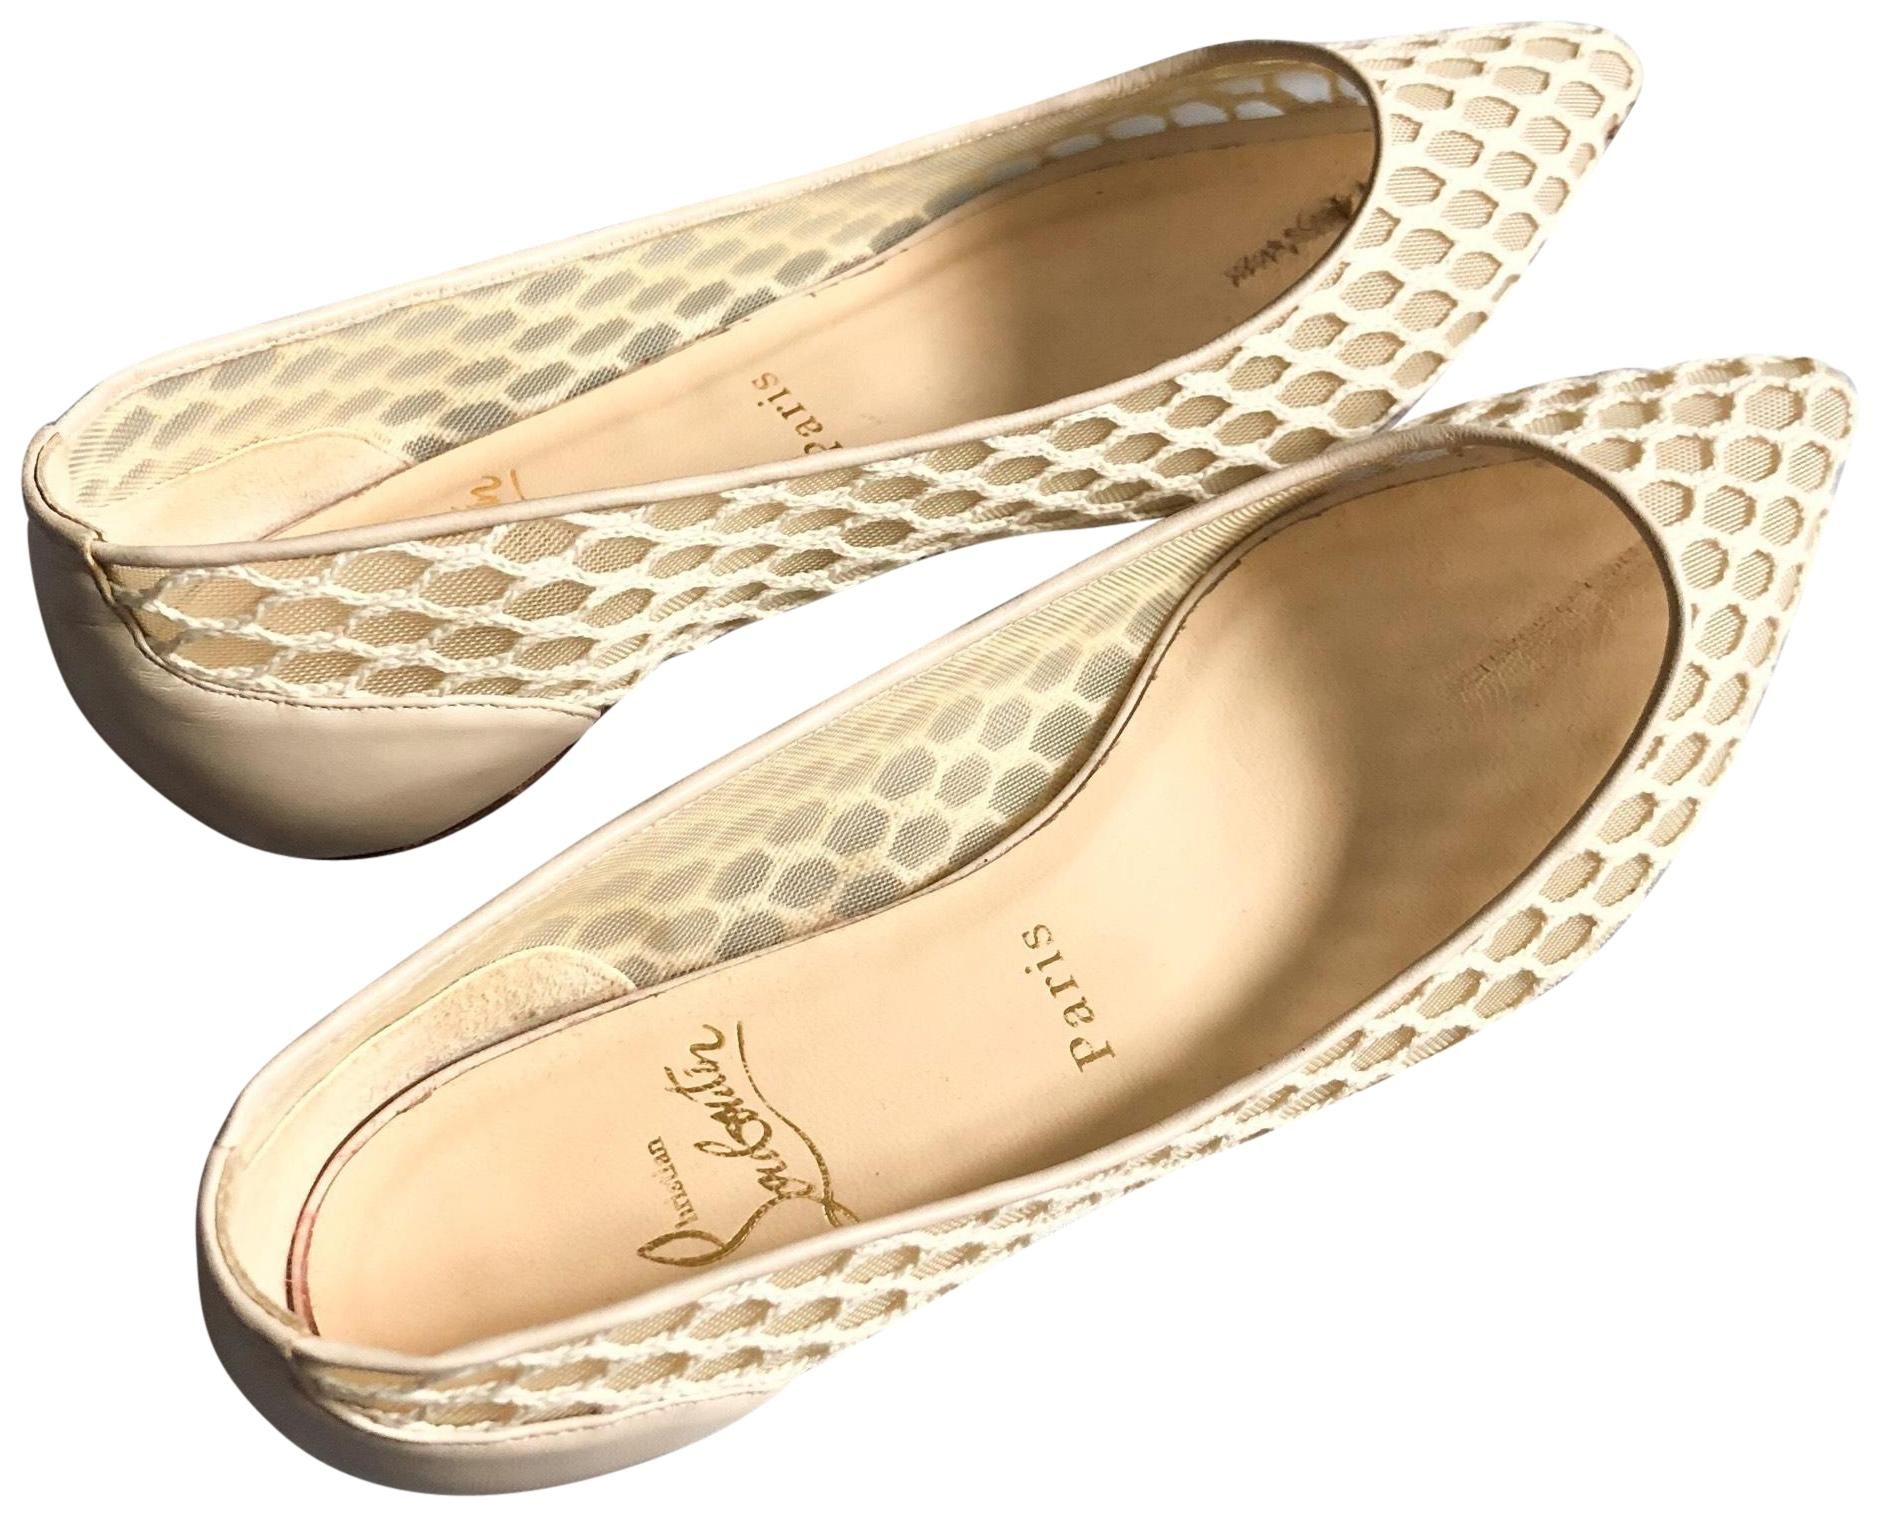 3ad528a6c81 discount code for christian louboutin pigaresille flats near 8badb 6e913